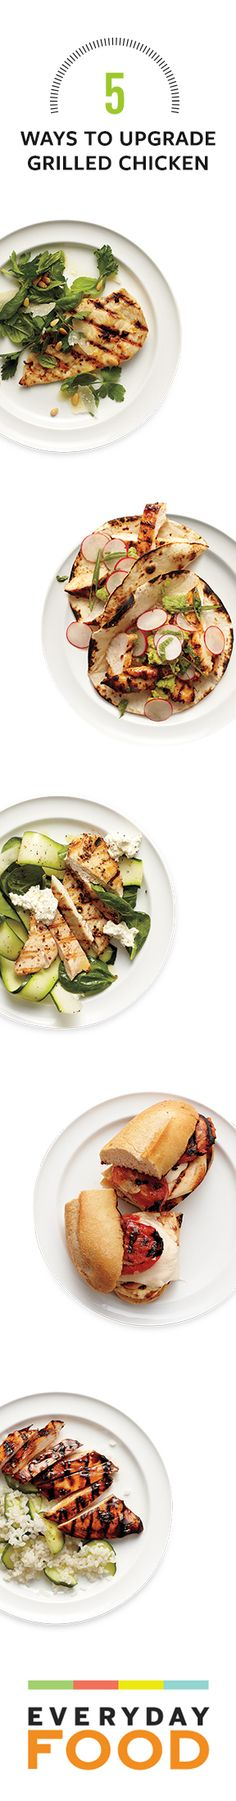 5 simple ways to upgrade grilled chicken from @Alice Cartee Food